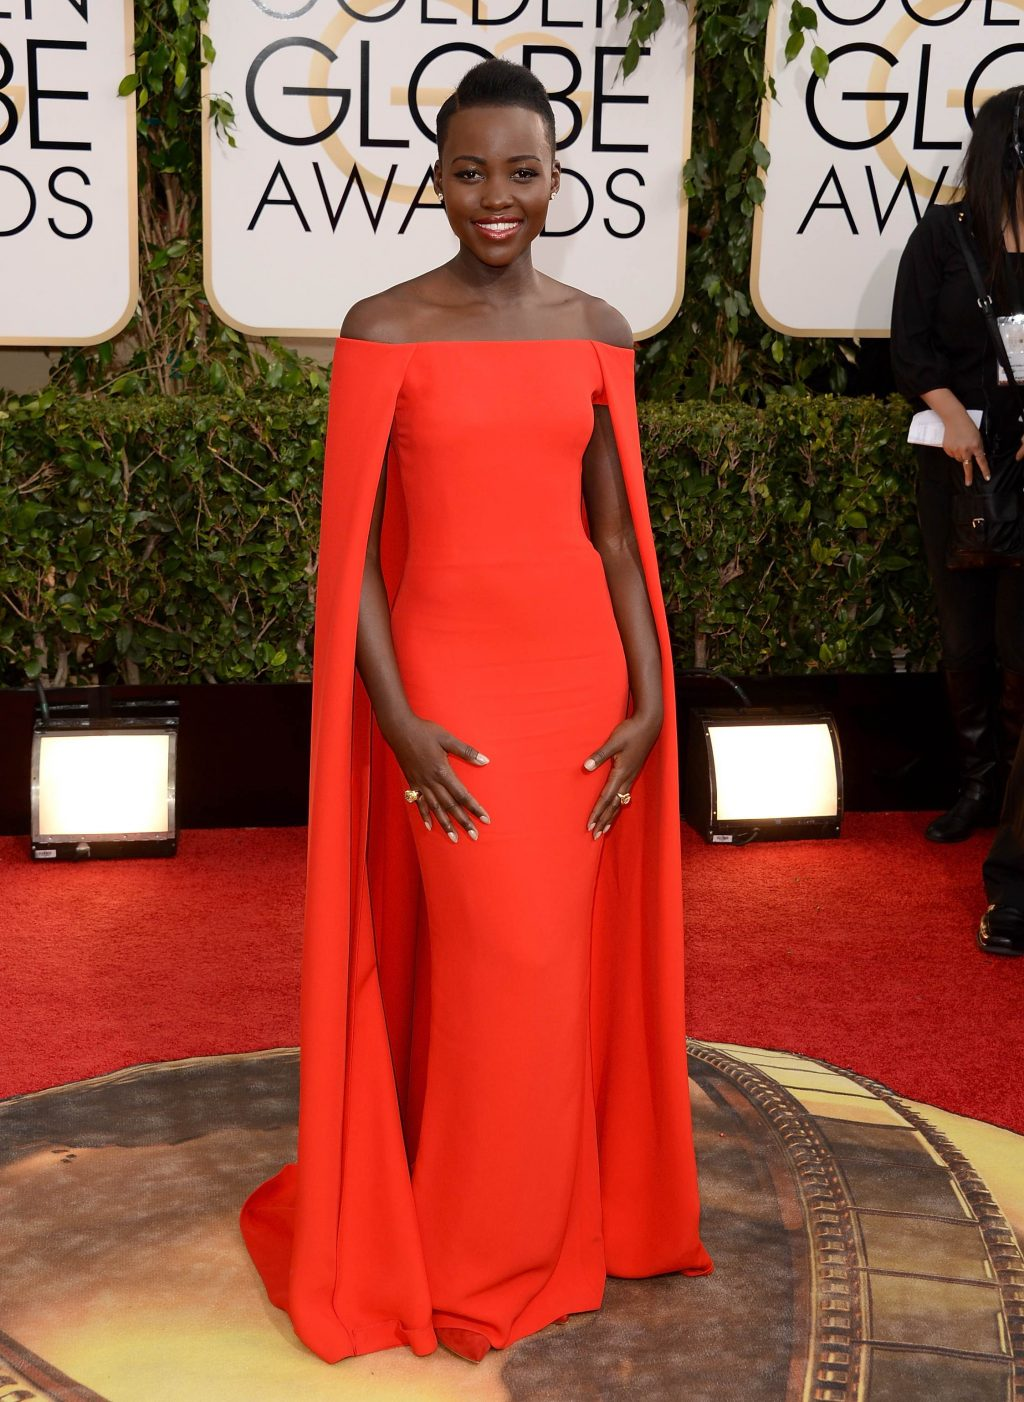 #WCW: Actress, Activist, and Inspiring Humanitarian Lupita Nyong'o